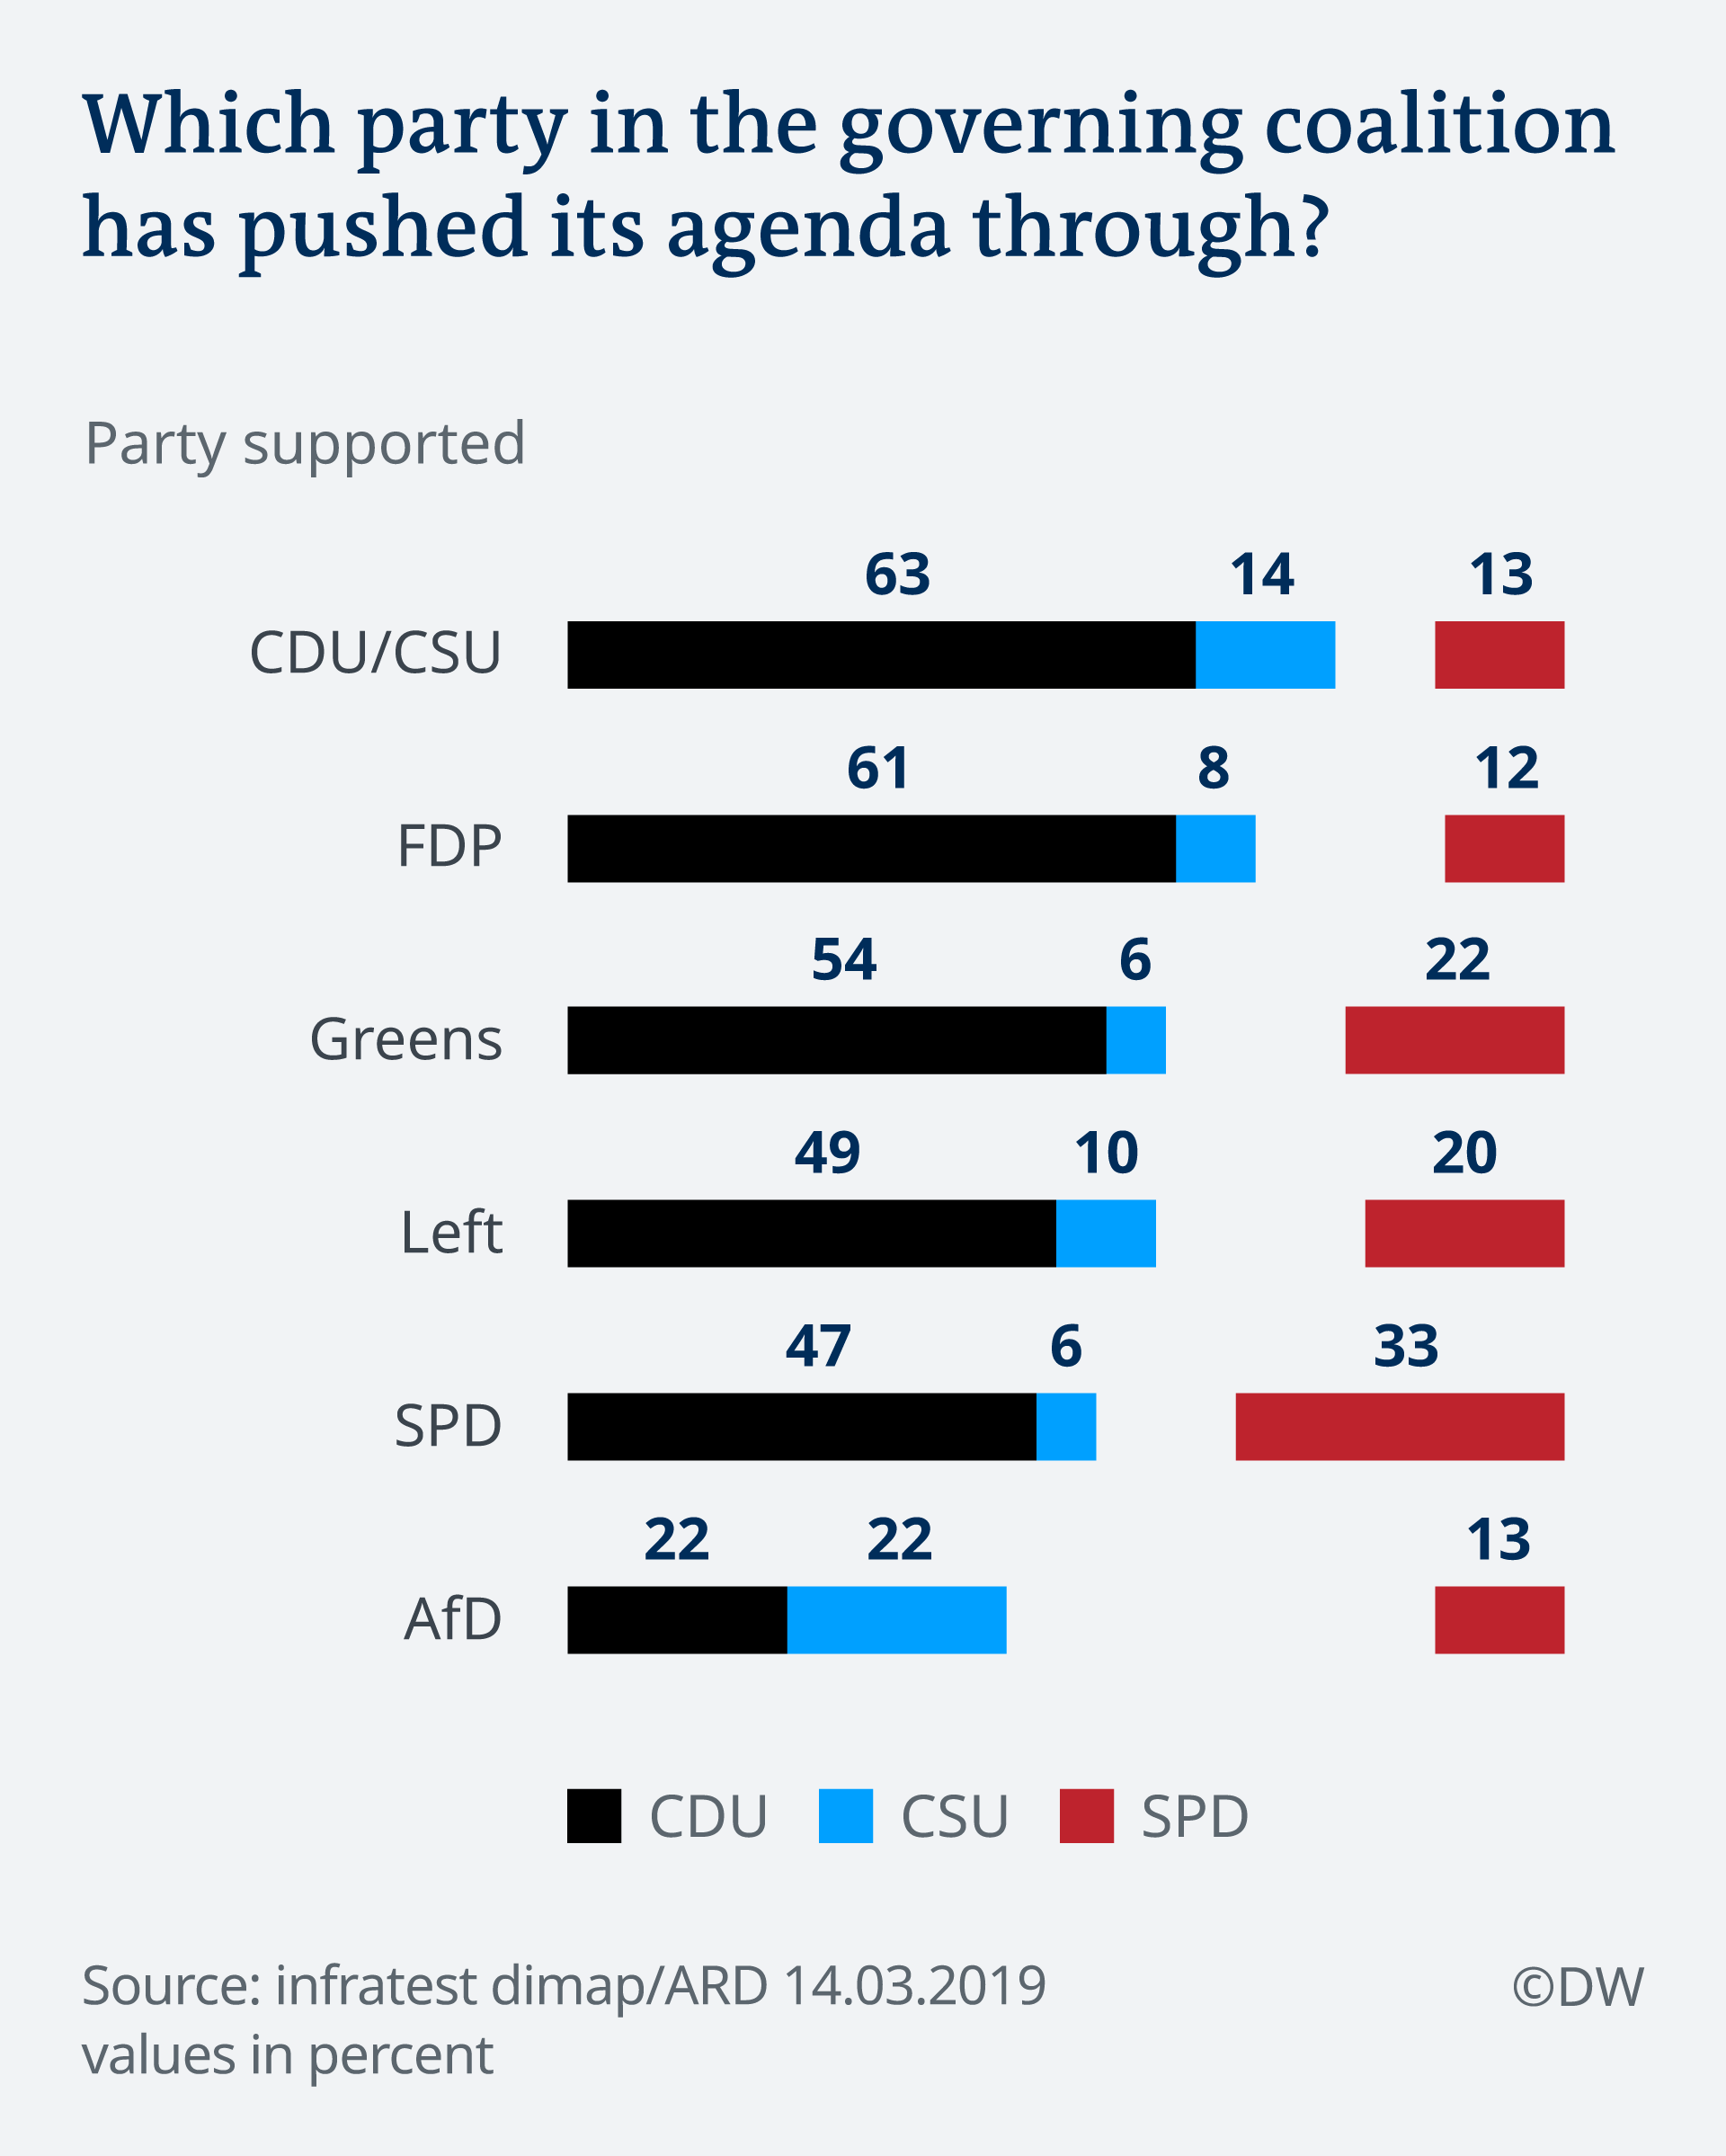 March 2019 Deutschland Trend bar graph on which governing party Germans think is most effectively pushing its agenda